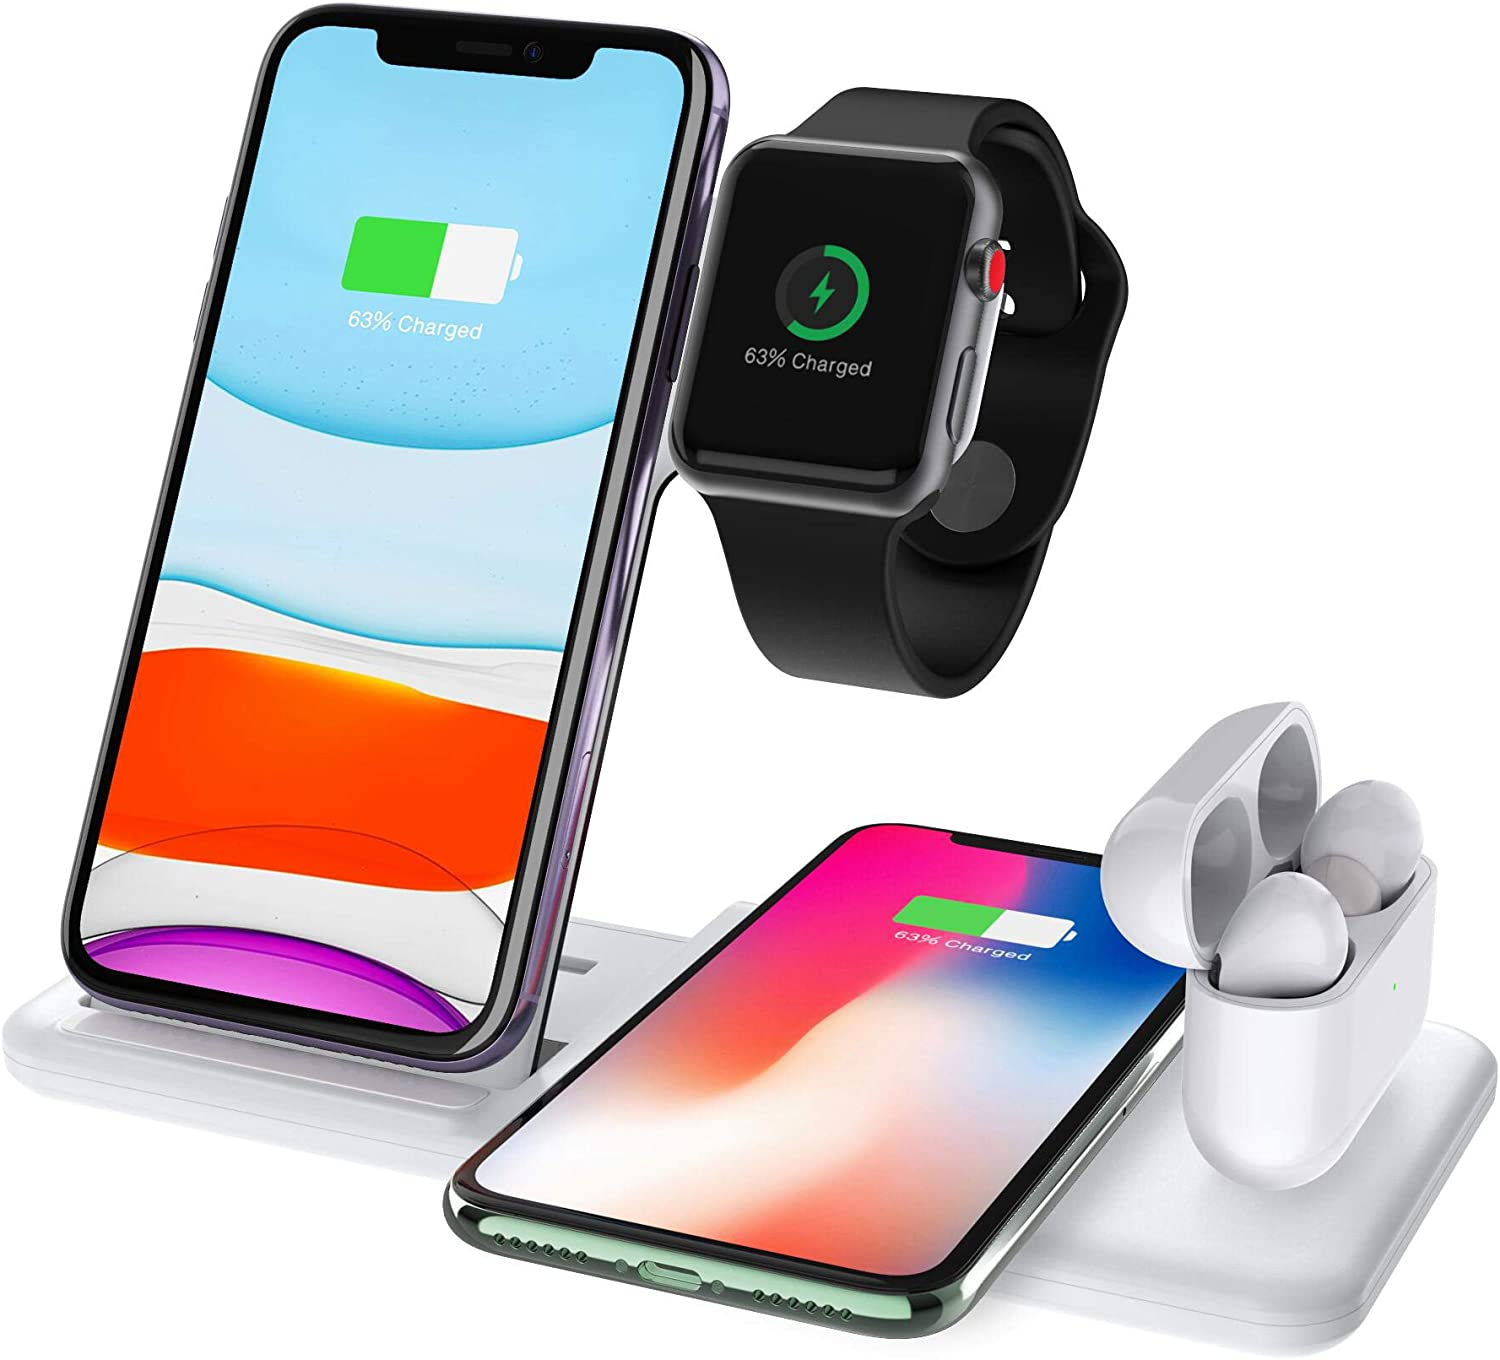 FDGAO Wireless Charger 15W Fast Wireless Charger Station 4 in 1 Charging for Apple Watch Airpods iPhone 1111proXXSXRXs Max88 Plus, Qi Wireless